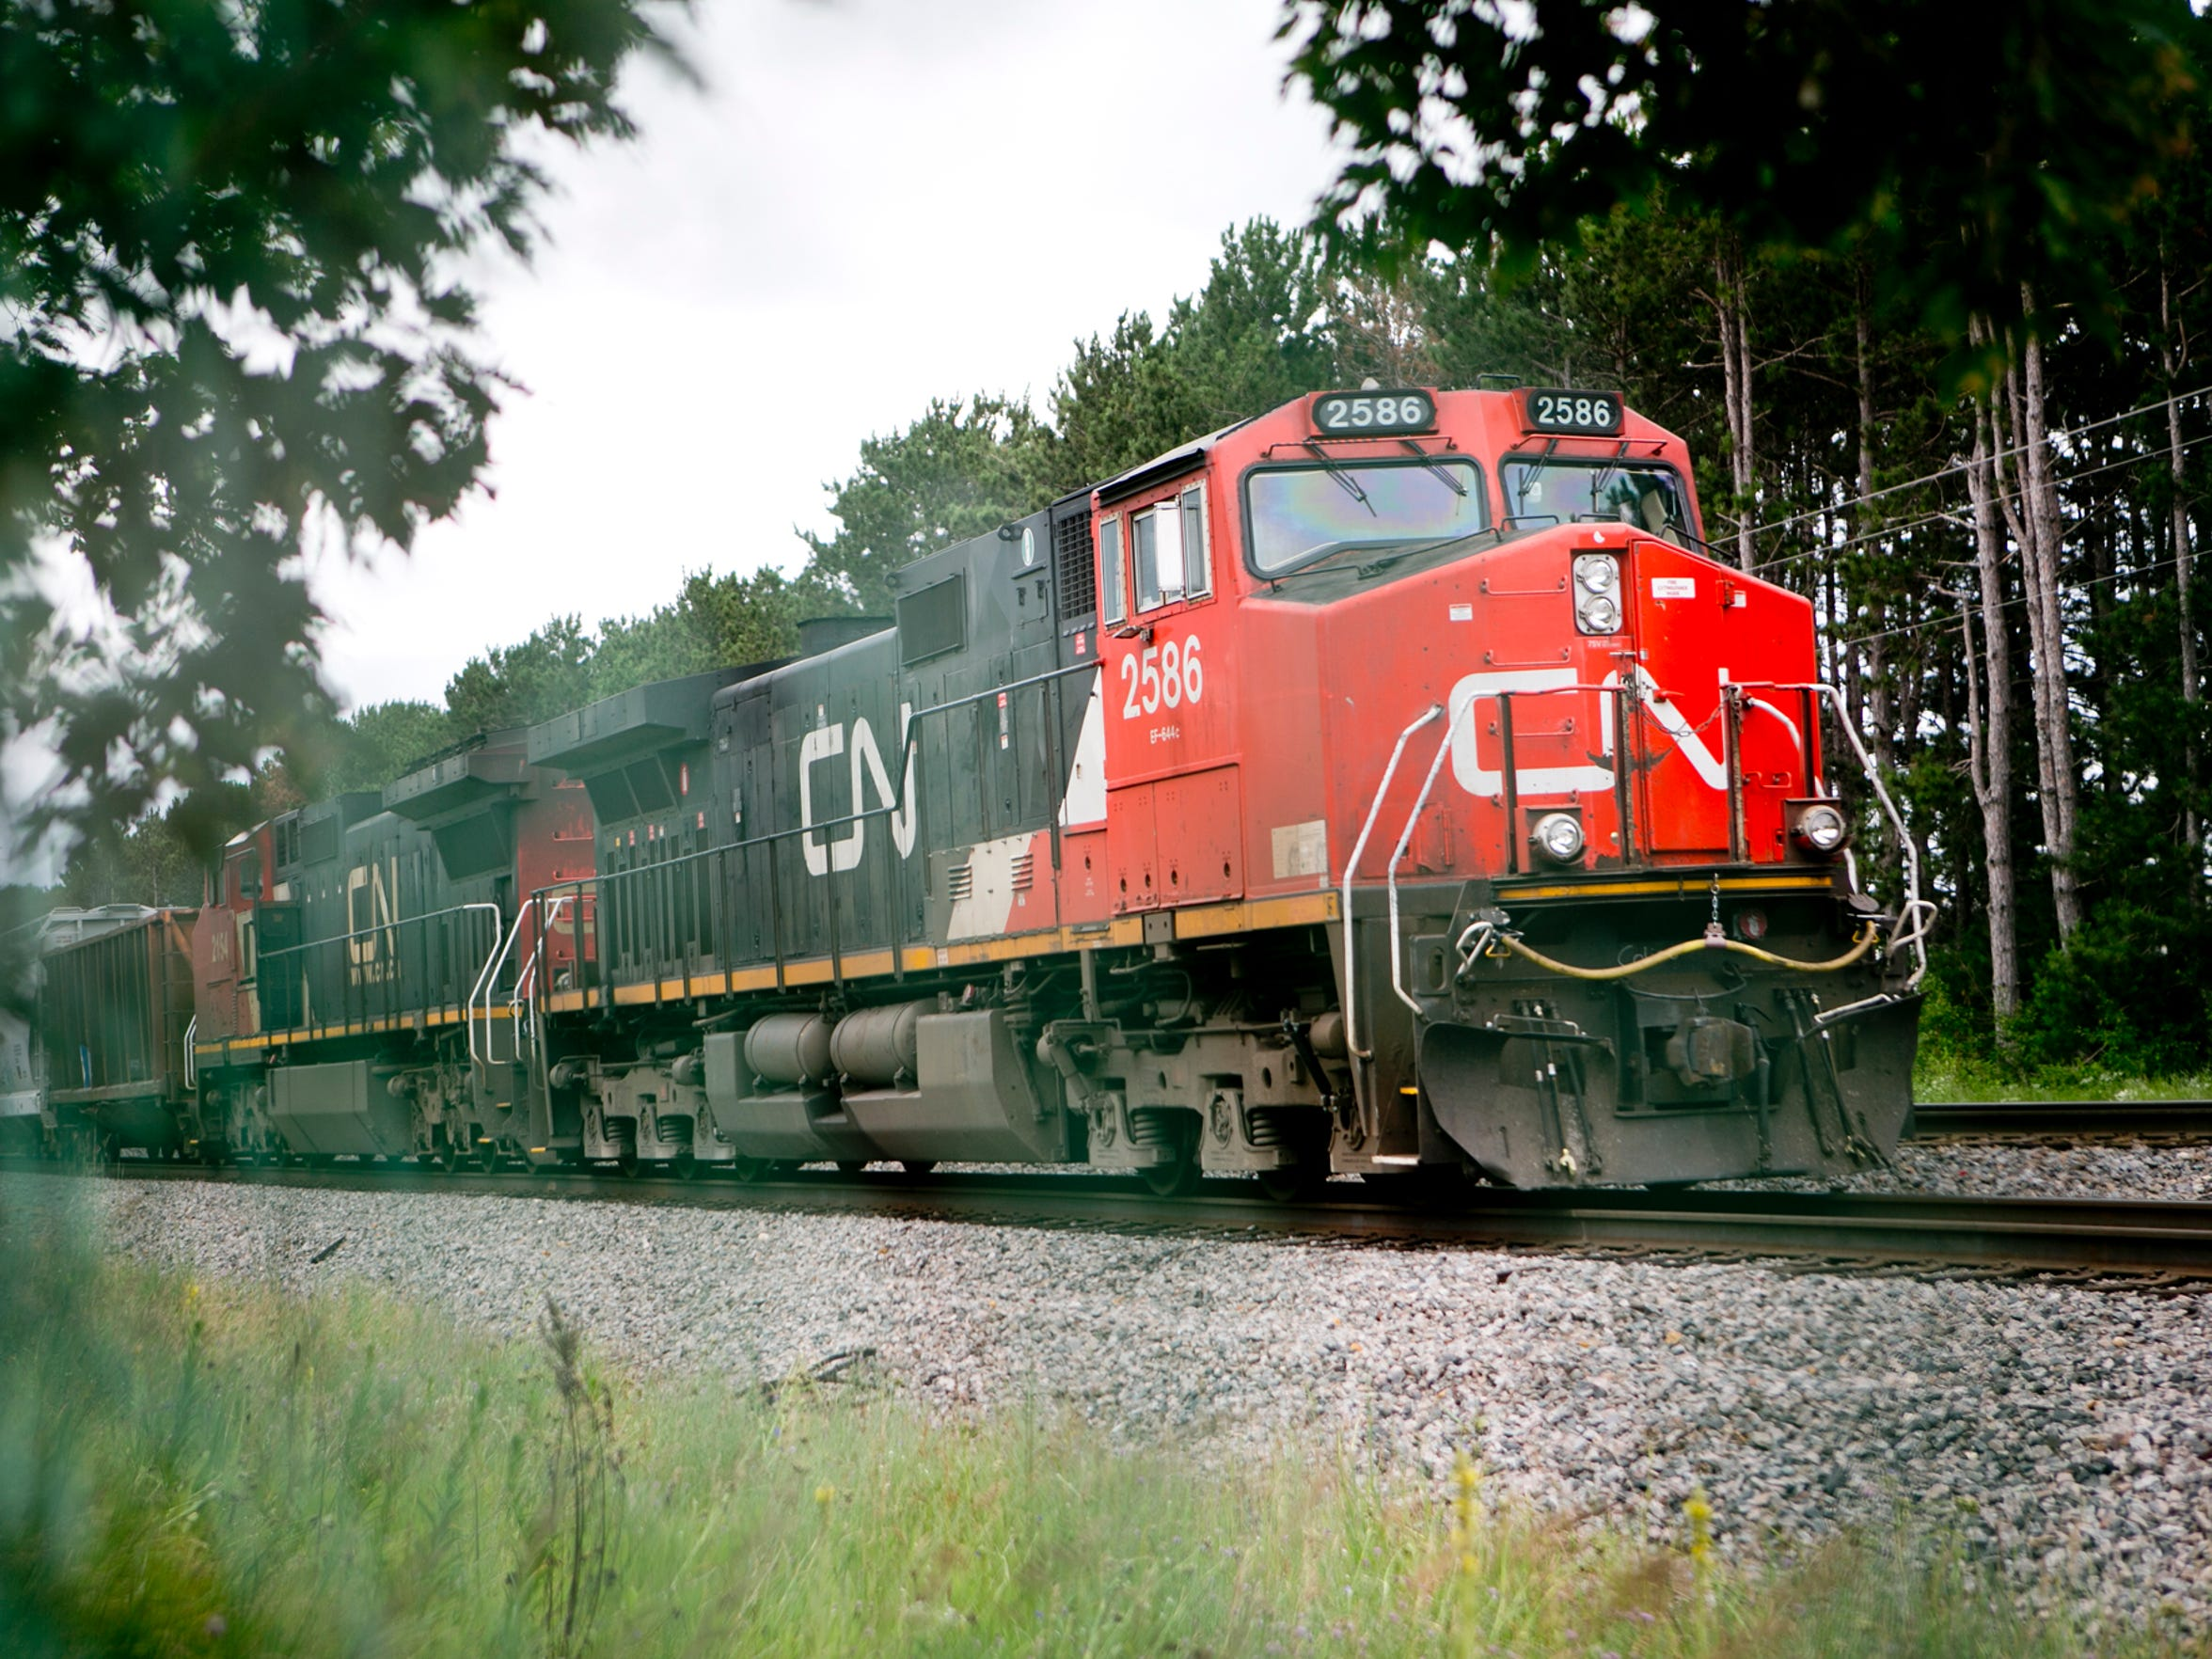 U.S. Rep. Ron Kind wants the government to have more power to hold companies like Canadian National Railroad accountable for their operations in local communities.